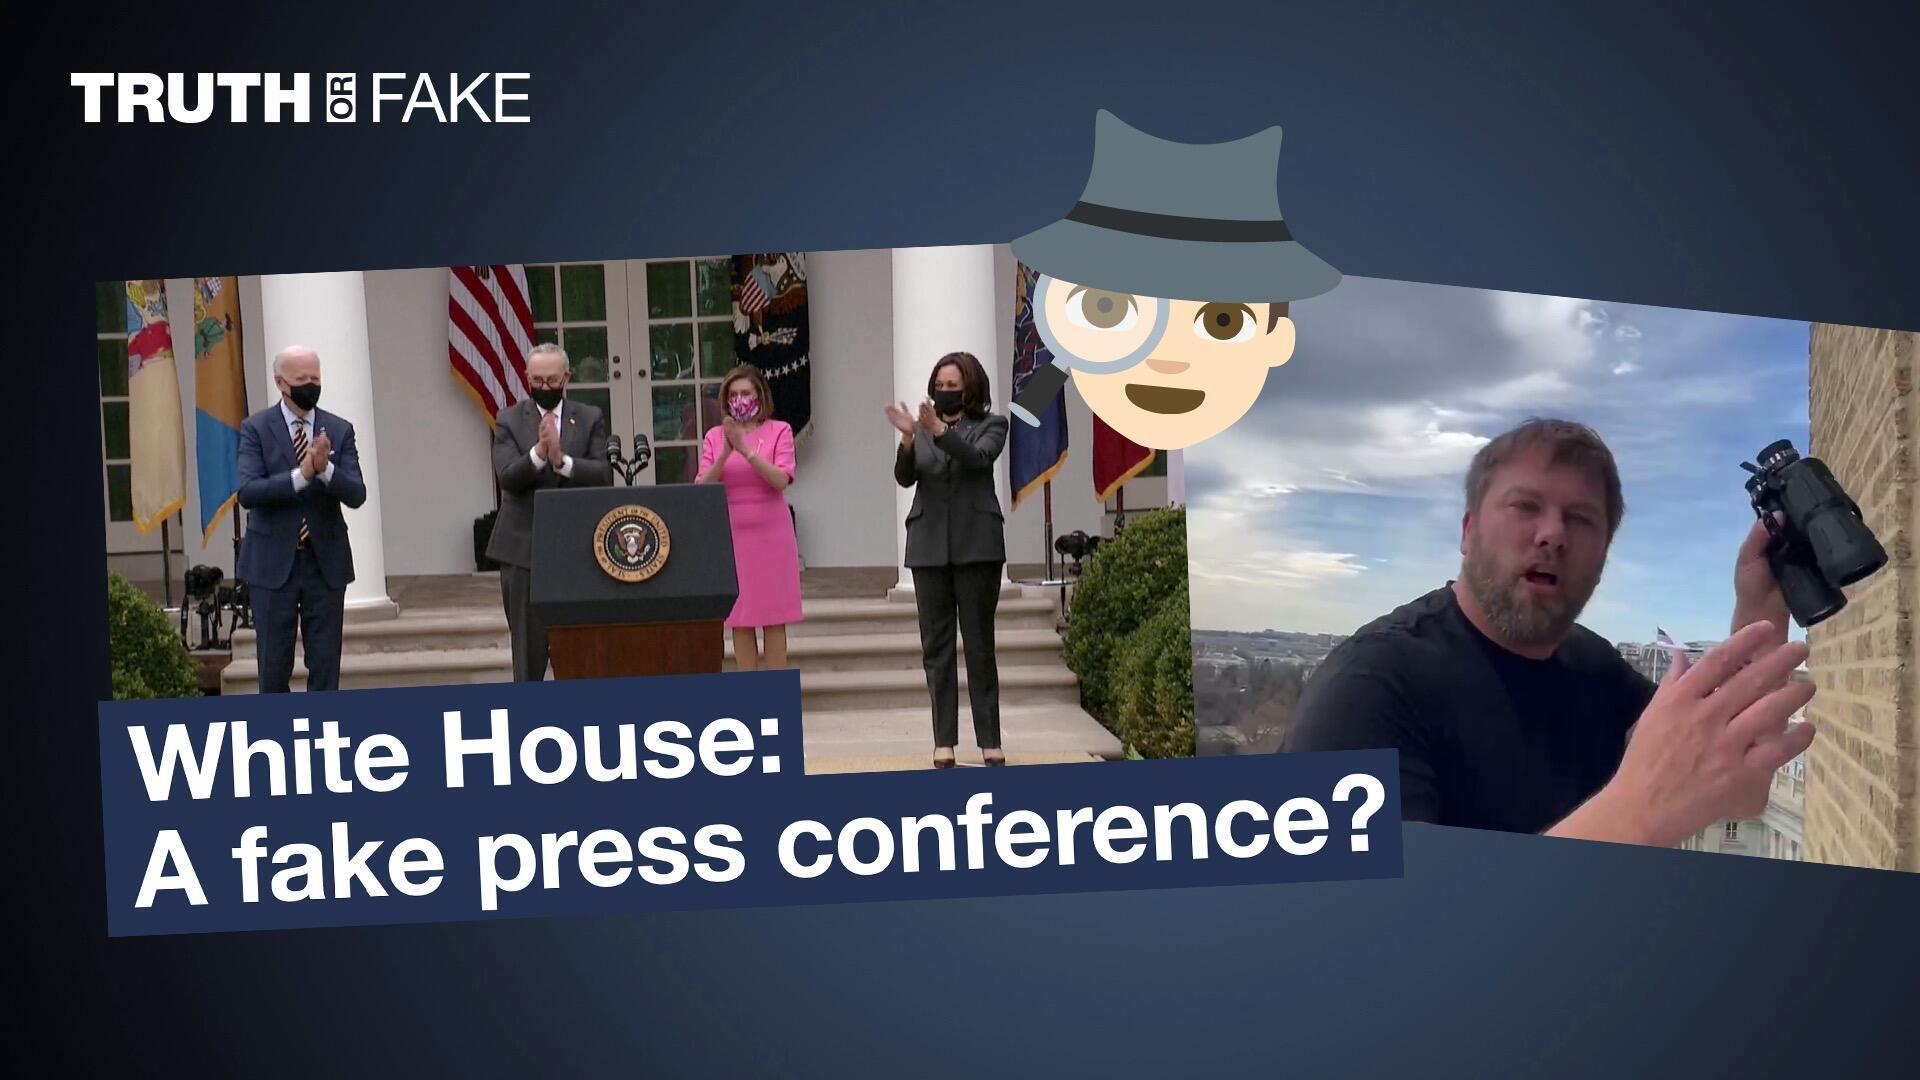 White House: A fake press conference at the White House?